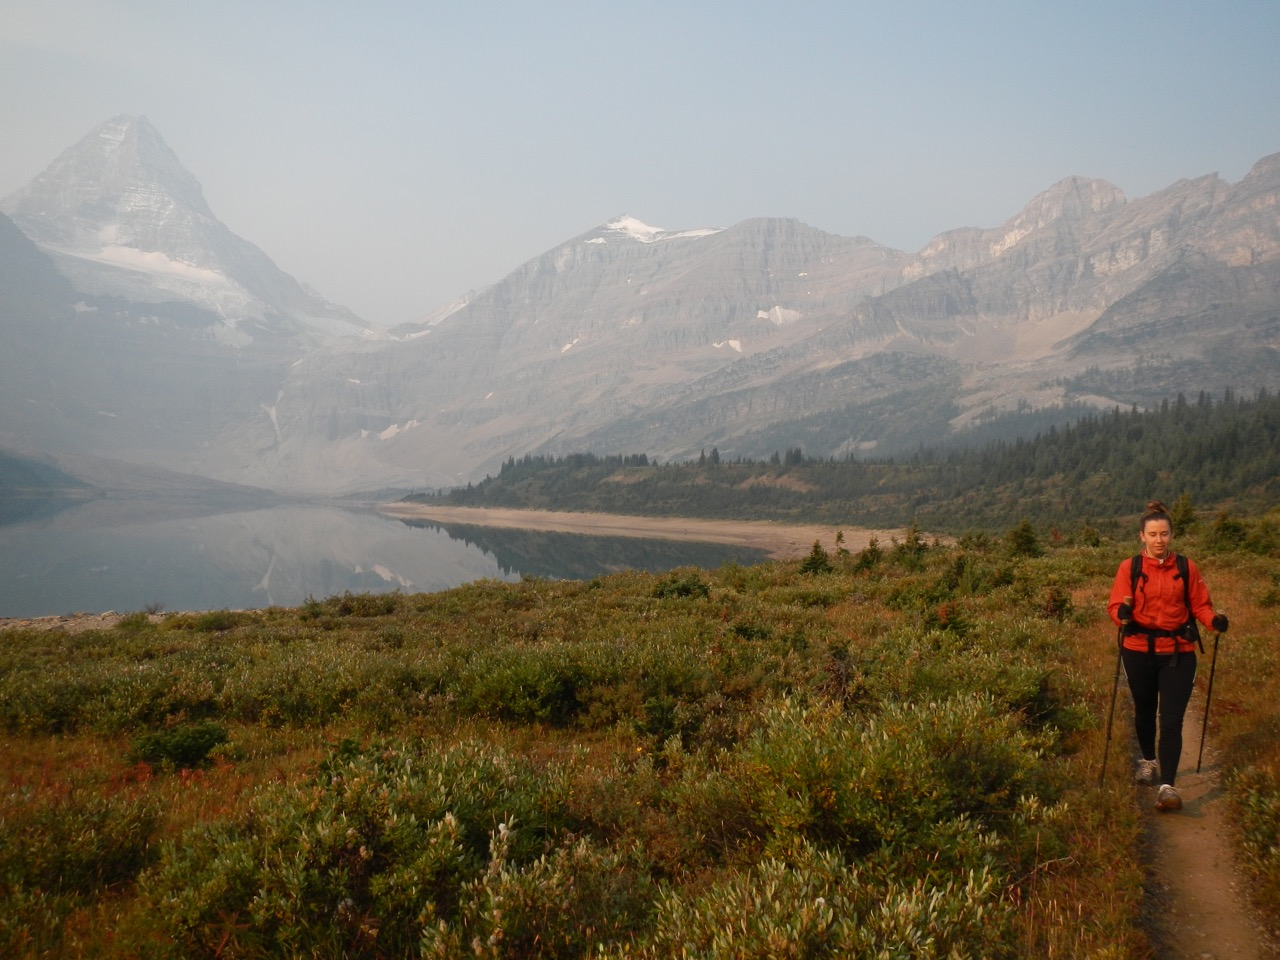 Section hiking part of the GDT two summers ago - Mt. Assiniboine